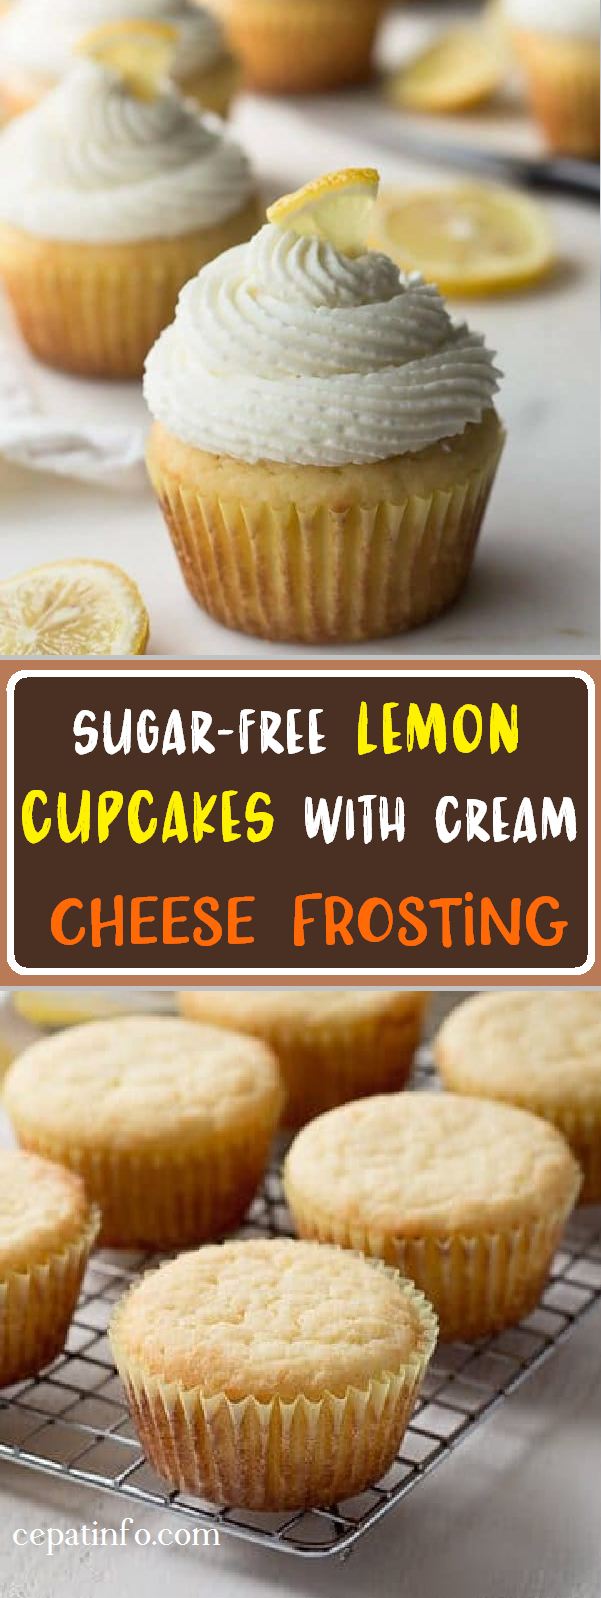 SUGAR-FREE LEMON CUPCAKES WITH CREAM CHEESE FROSTING